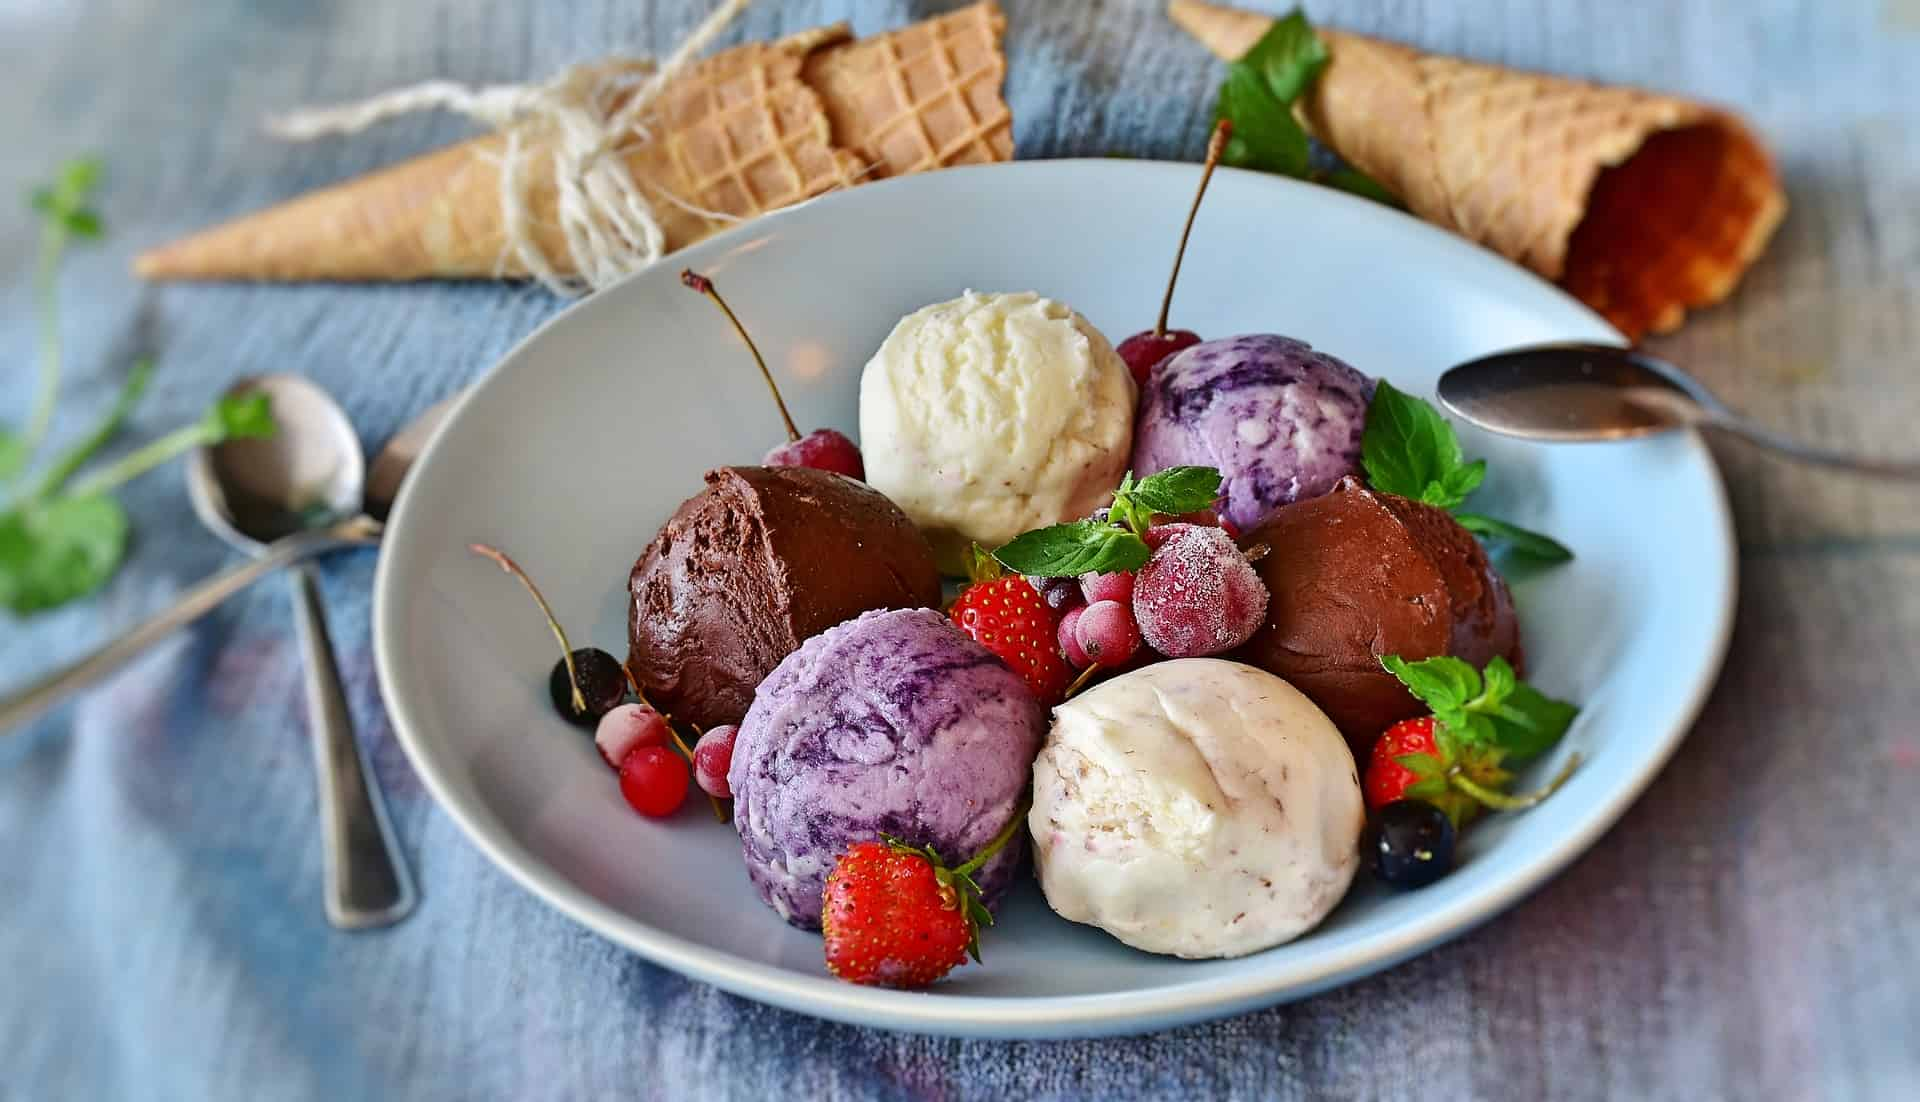 Making Ice Creams: The Step By Step Guide